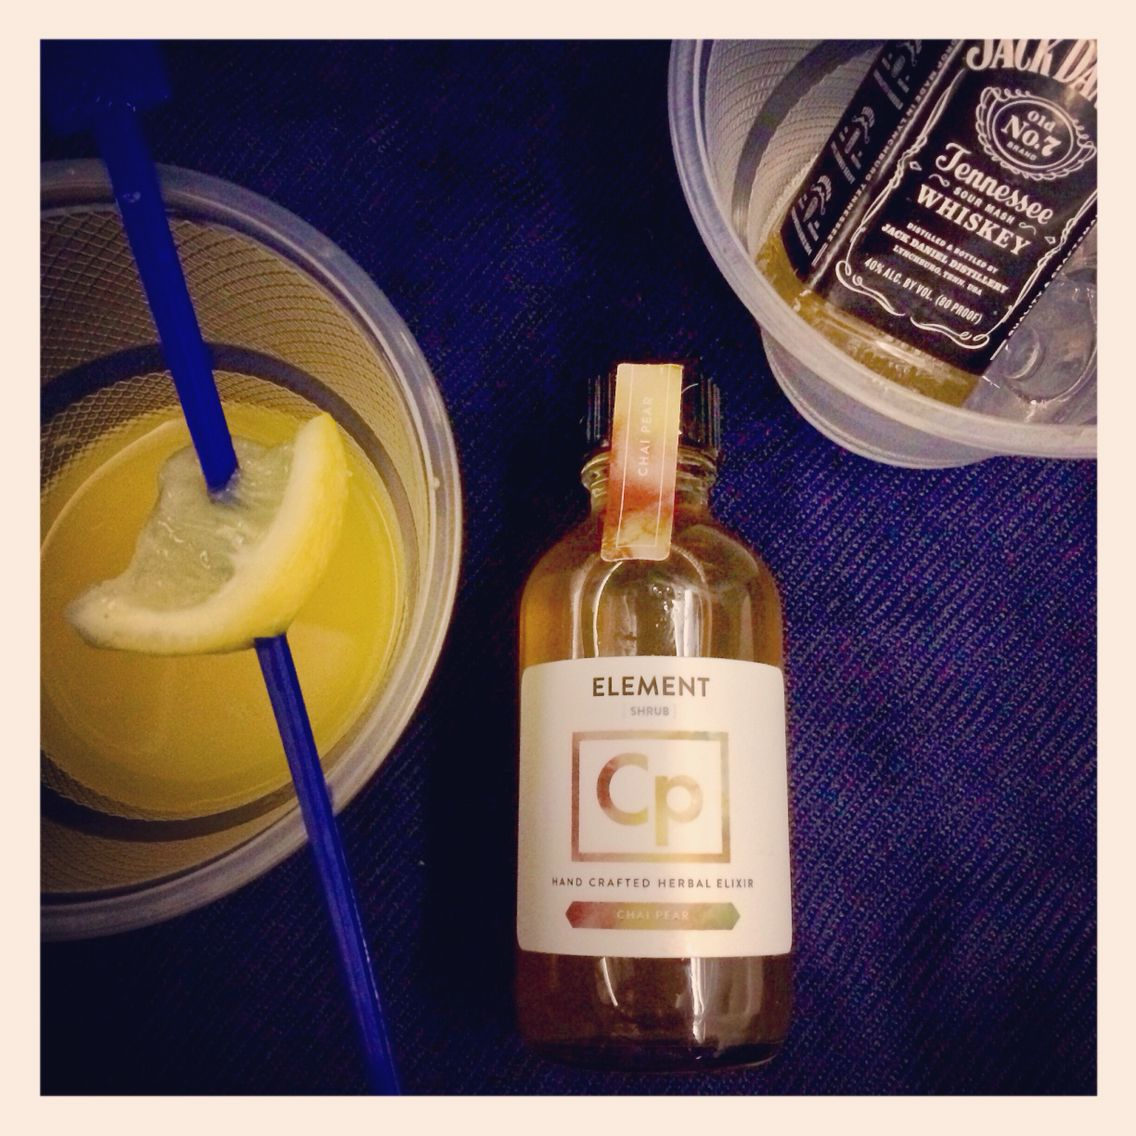 Because you shouldn't compromise on cocktails at 30,000 feet.  1/2oz Chai Pear Element shrub, 1oz jack Daniels whiskey, splash of OJ, squeeze of lemon.